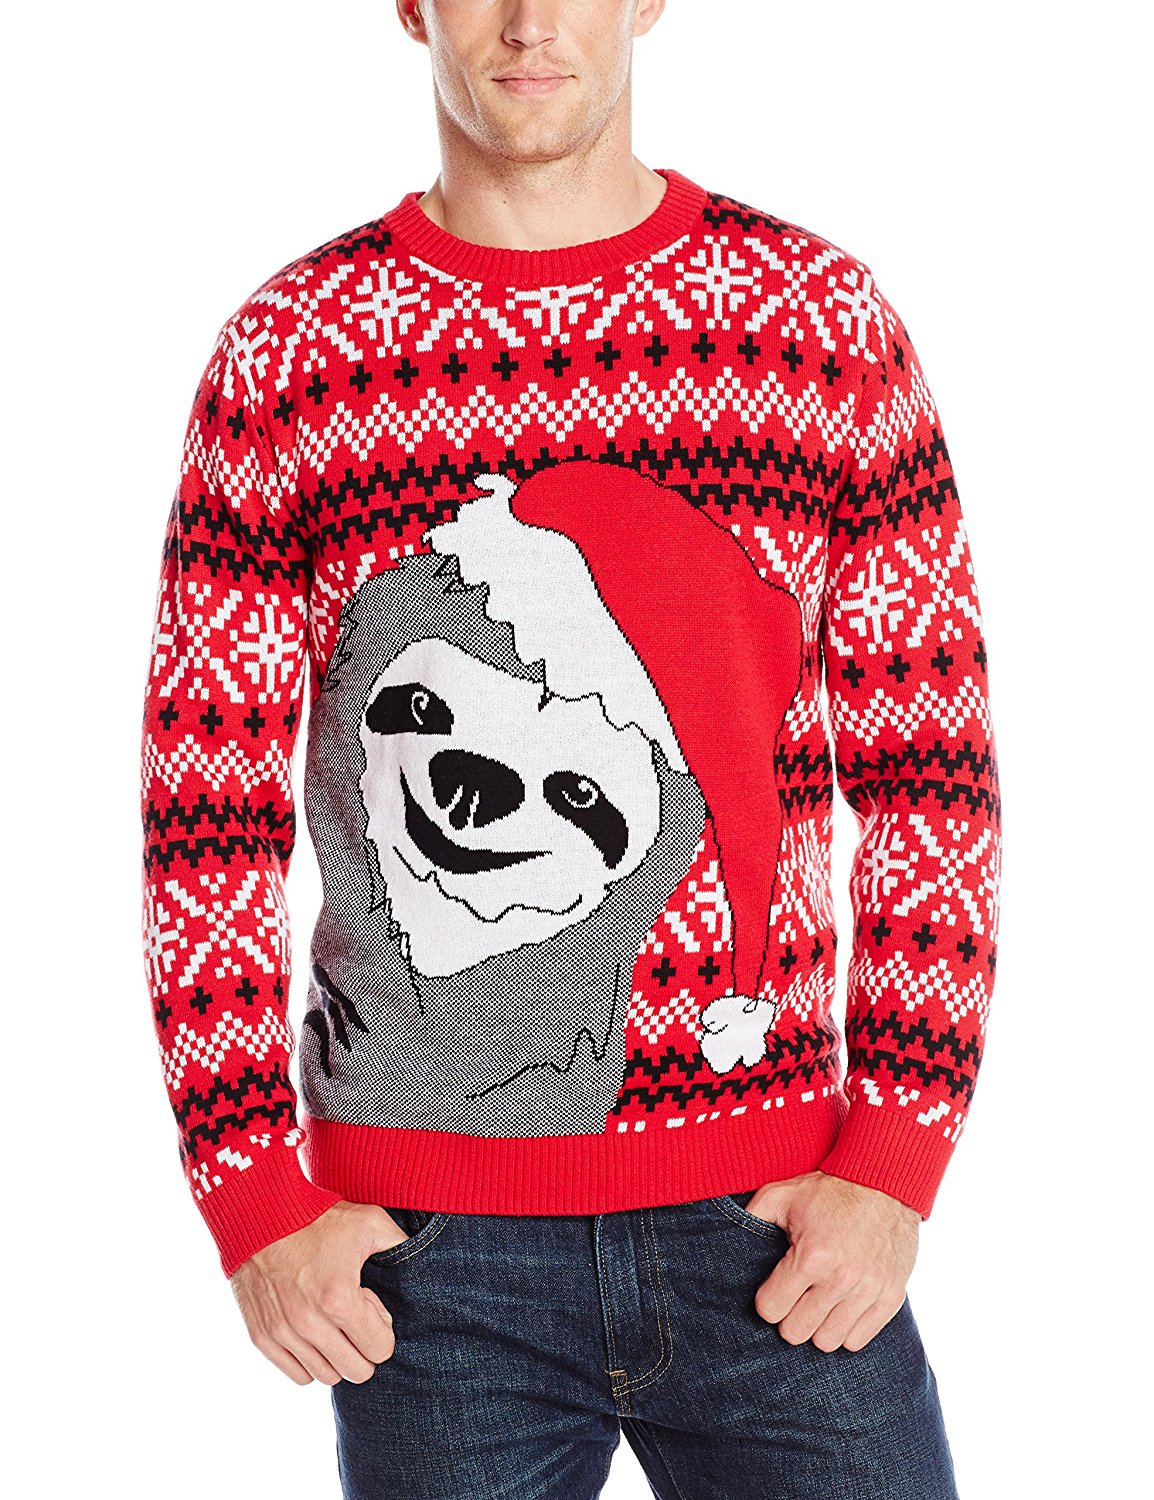 How to style up your Christmas sweaters?